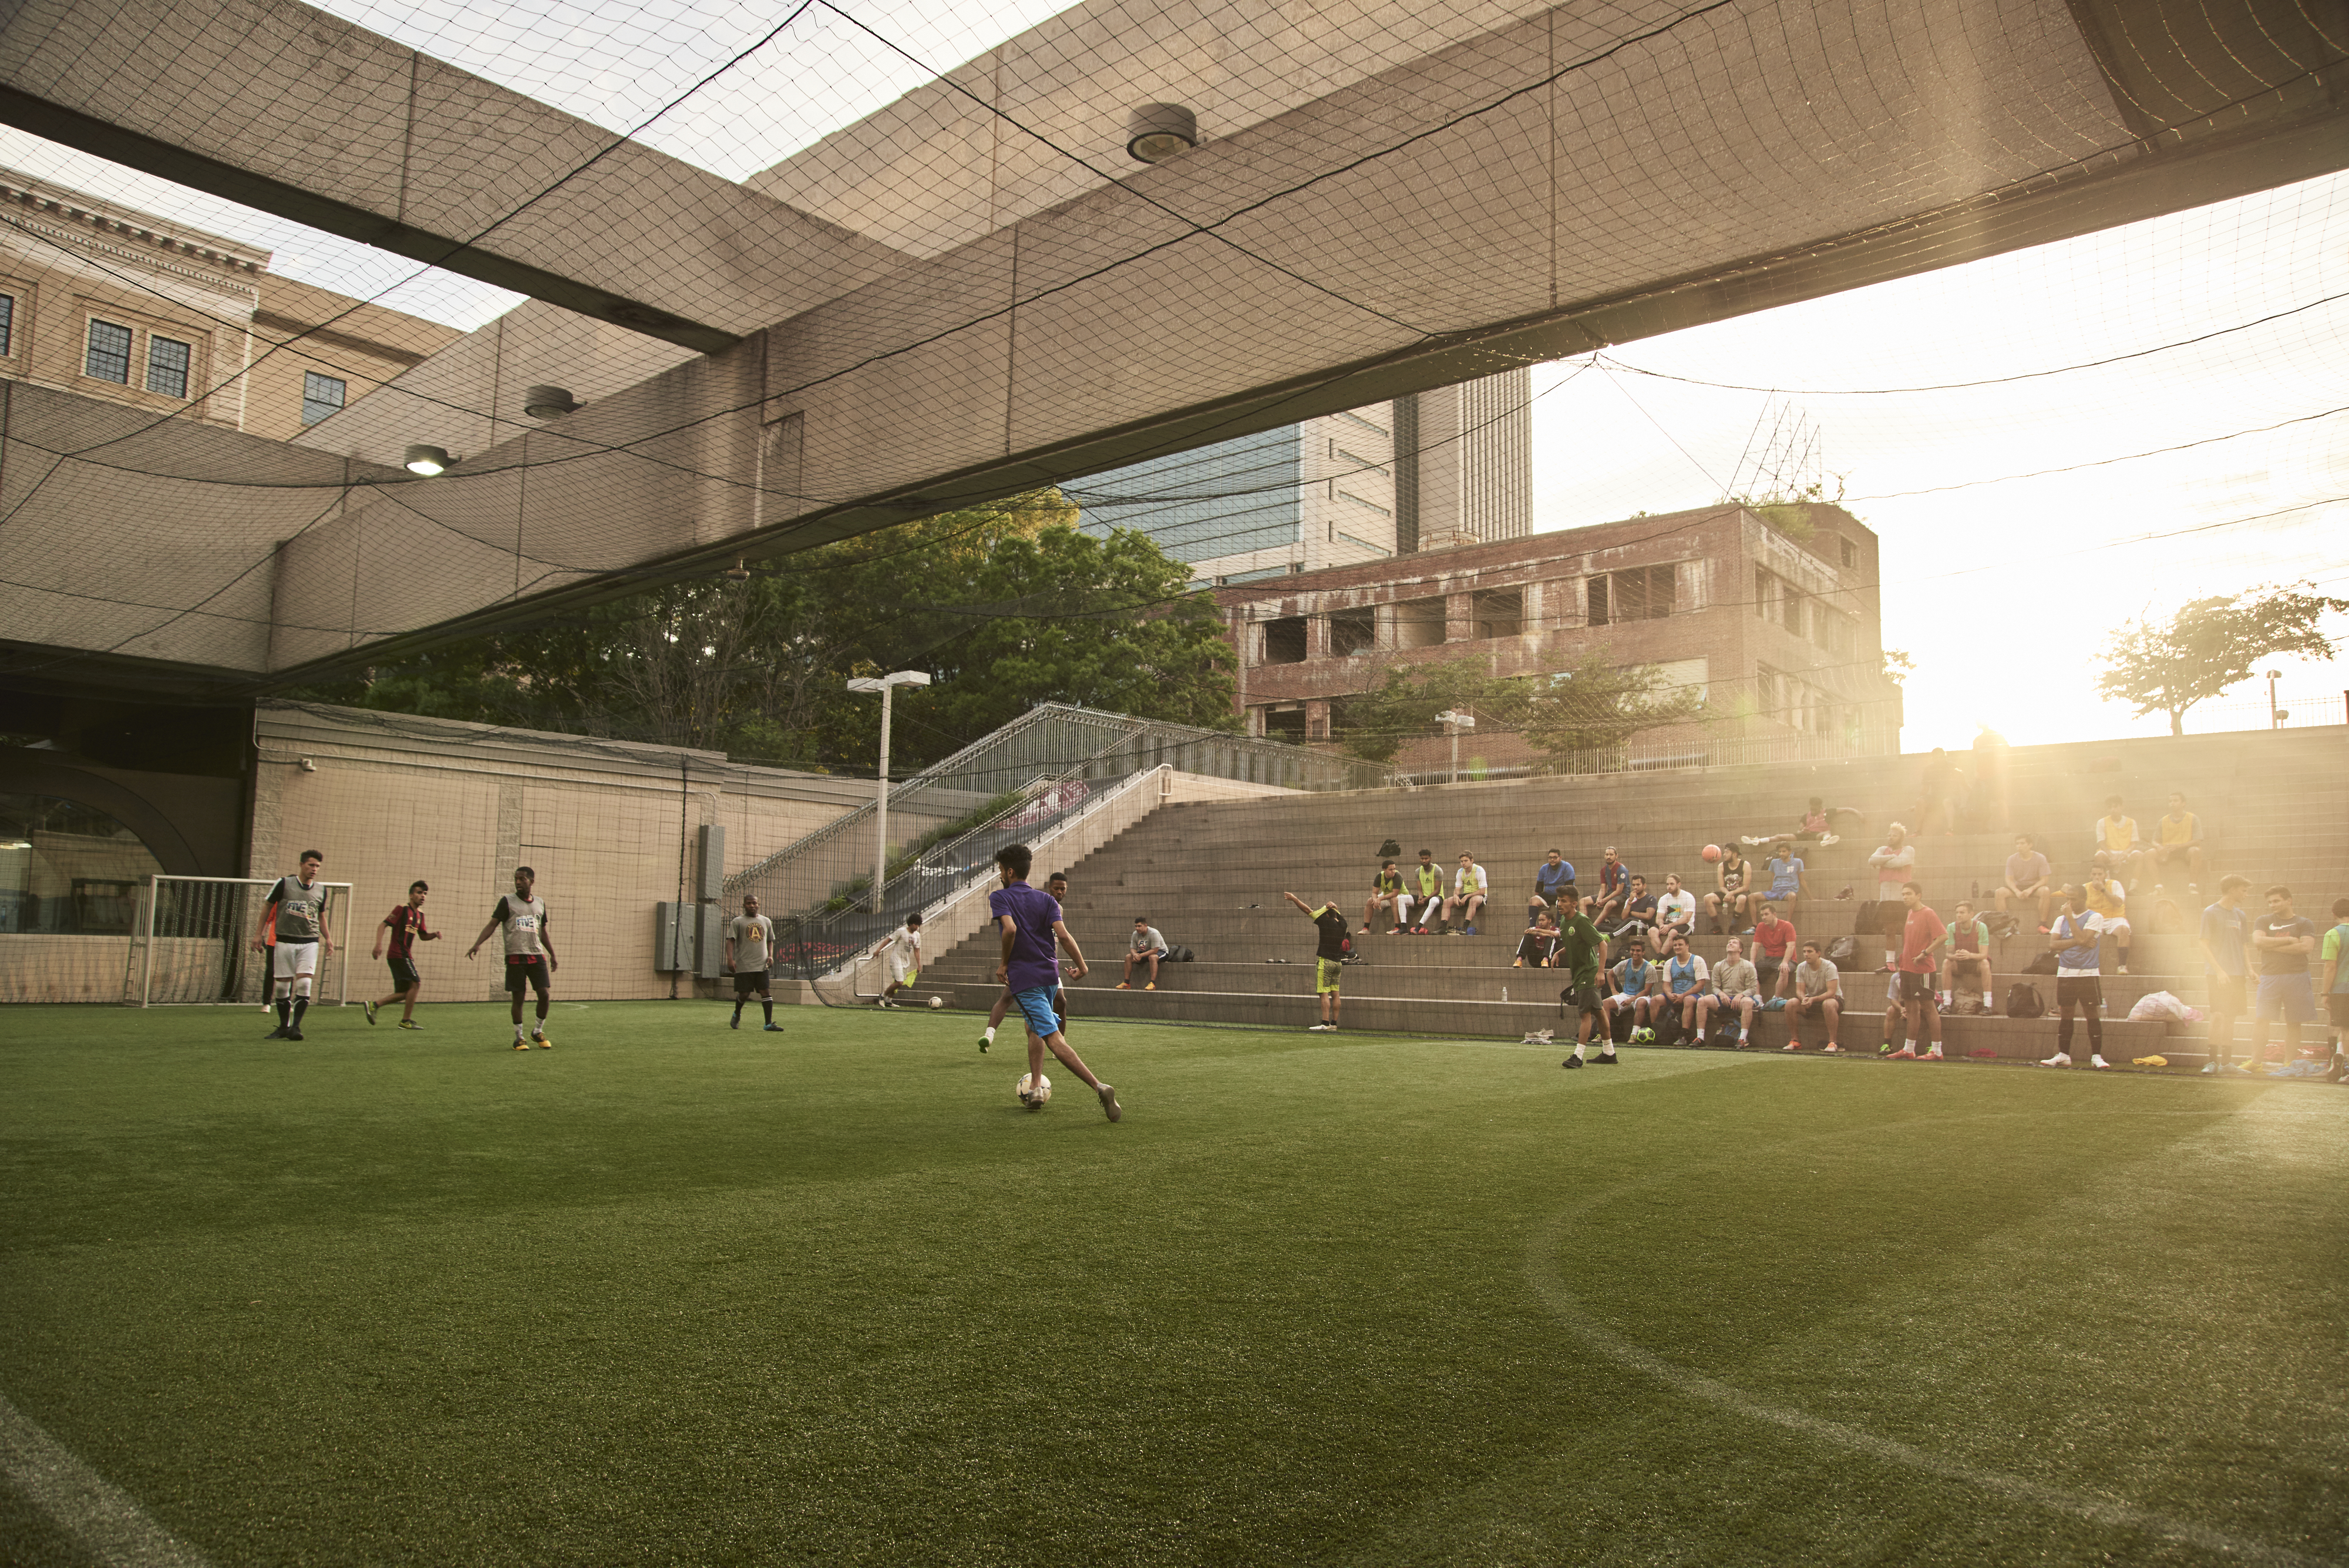 15a0539563b4 The Five Points MARTA station is home to a soccer field, developed through  a program called Soccer In The Streets, which looks to garner interest in  soccer ...